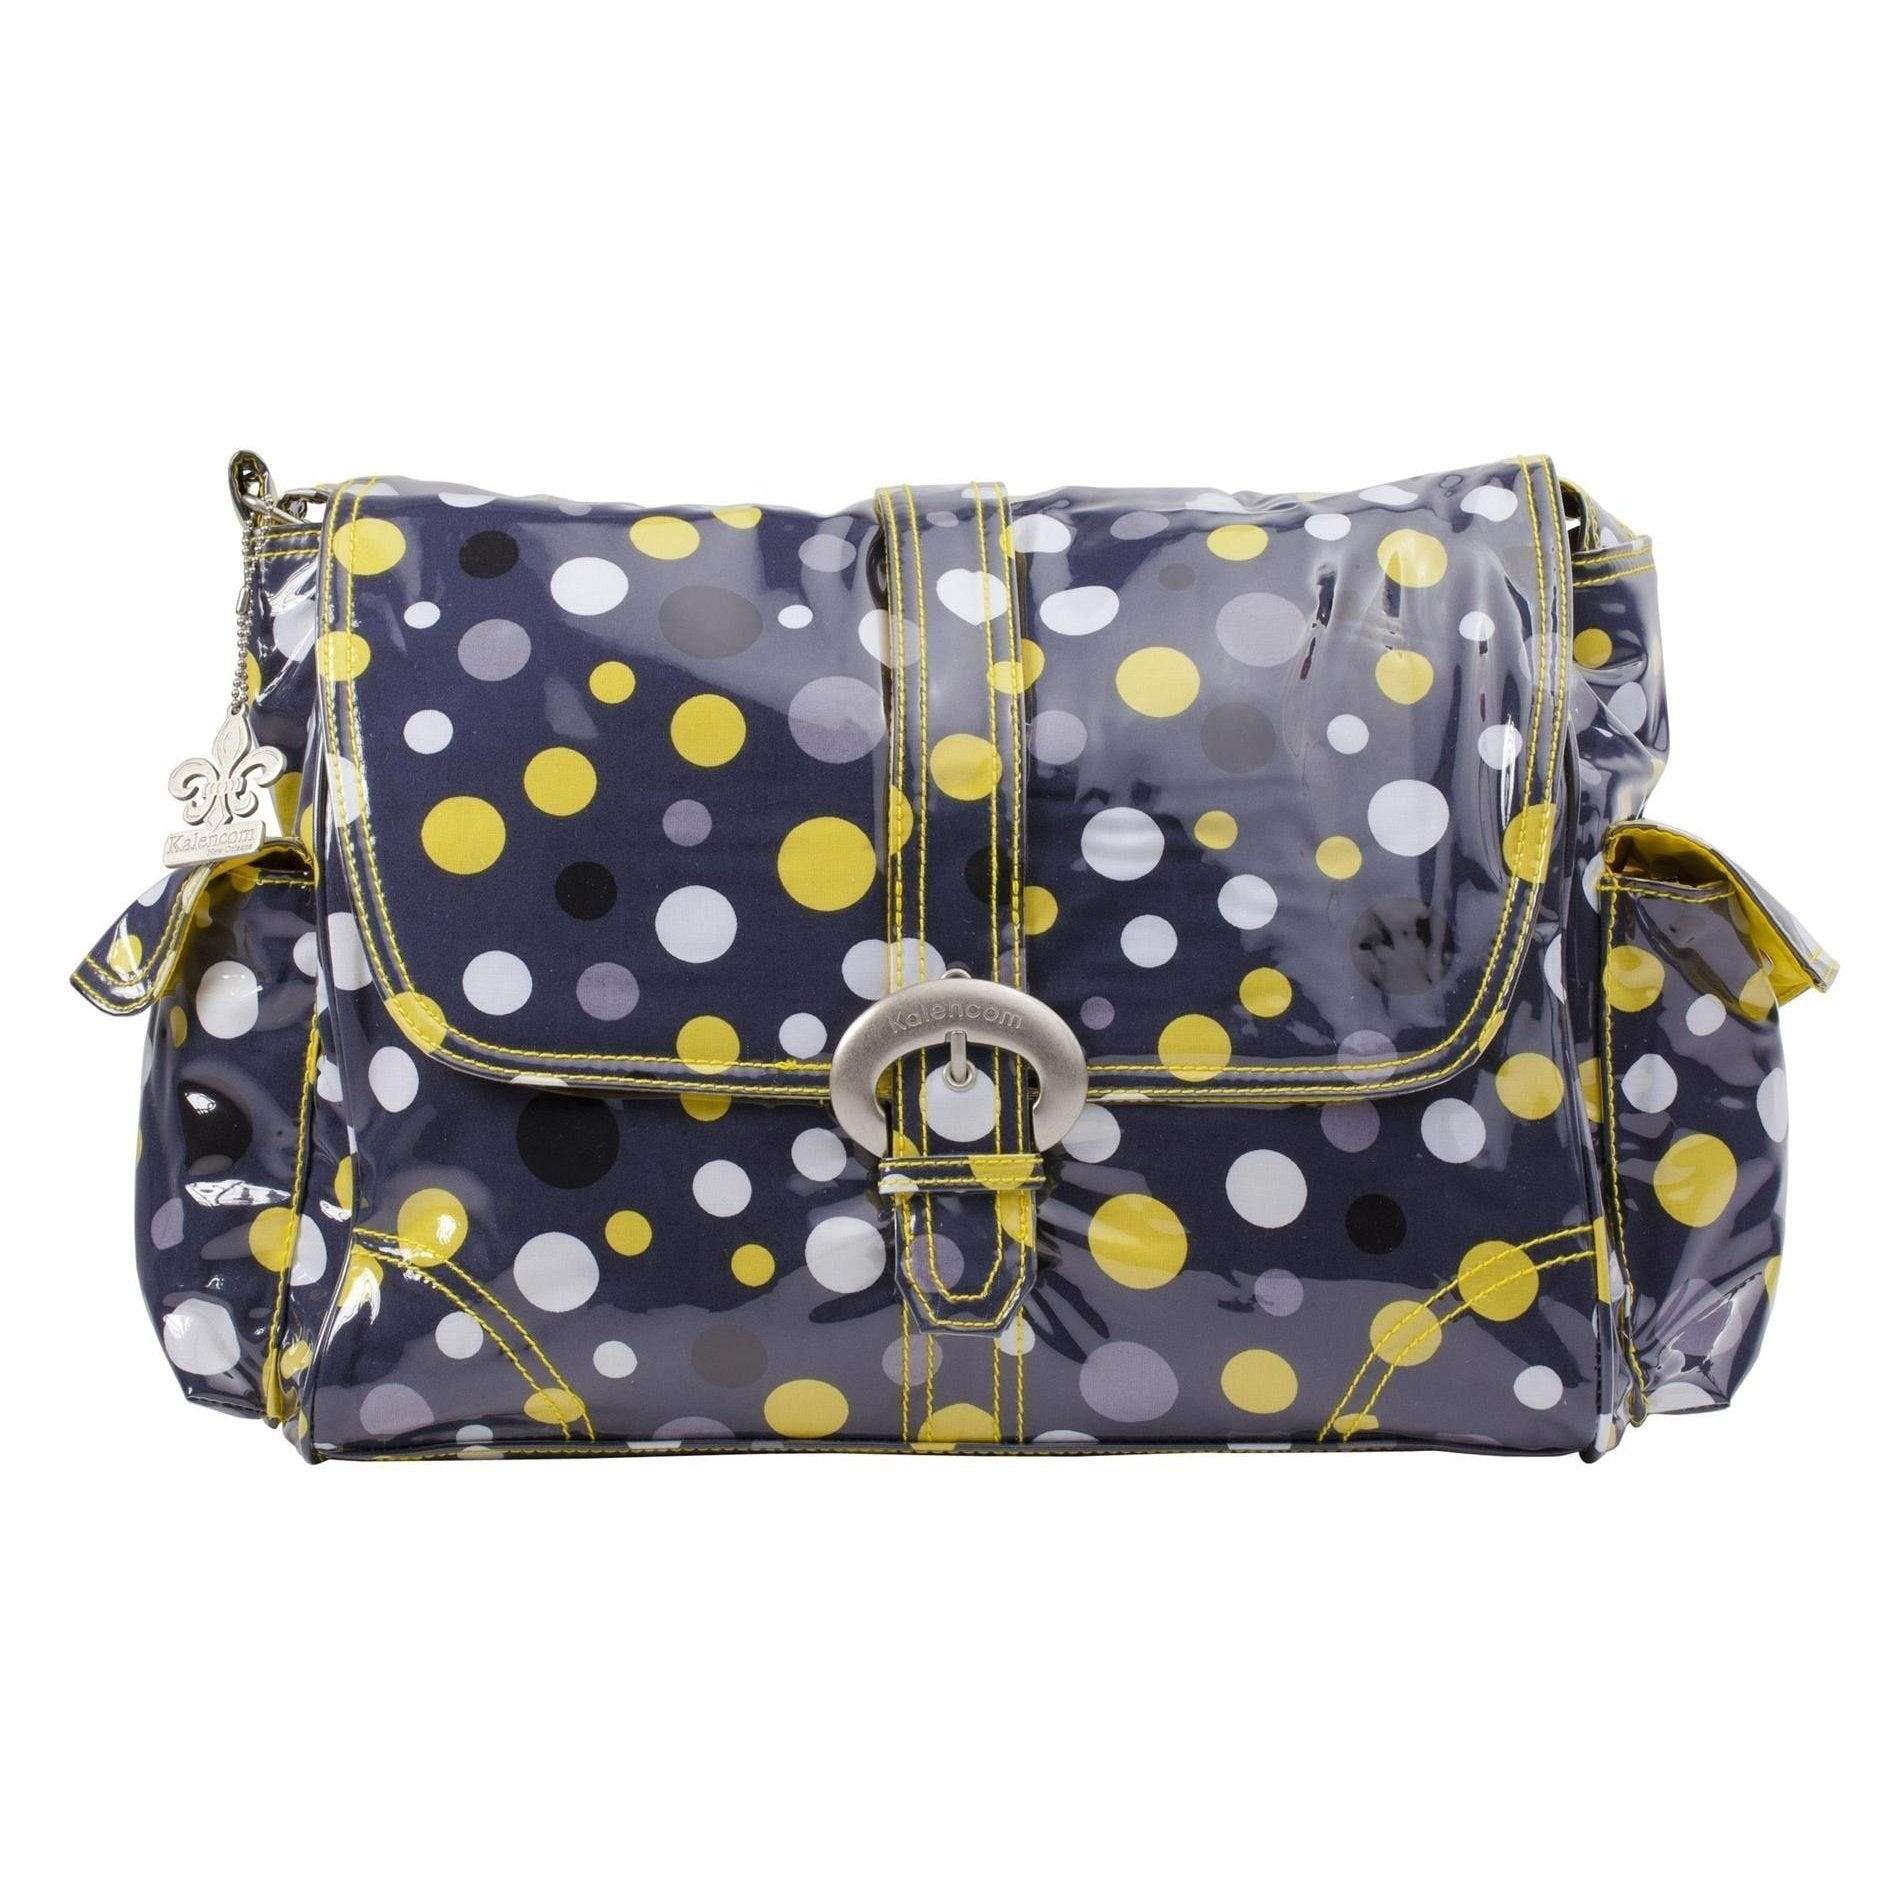 Lollidots Laminated Buckle Diaper Bag | Style 2960 - Kalencom-Diaper Bags-Jack and Jill Boutique